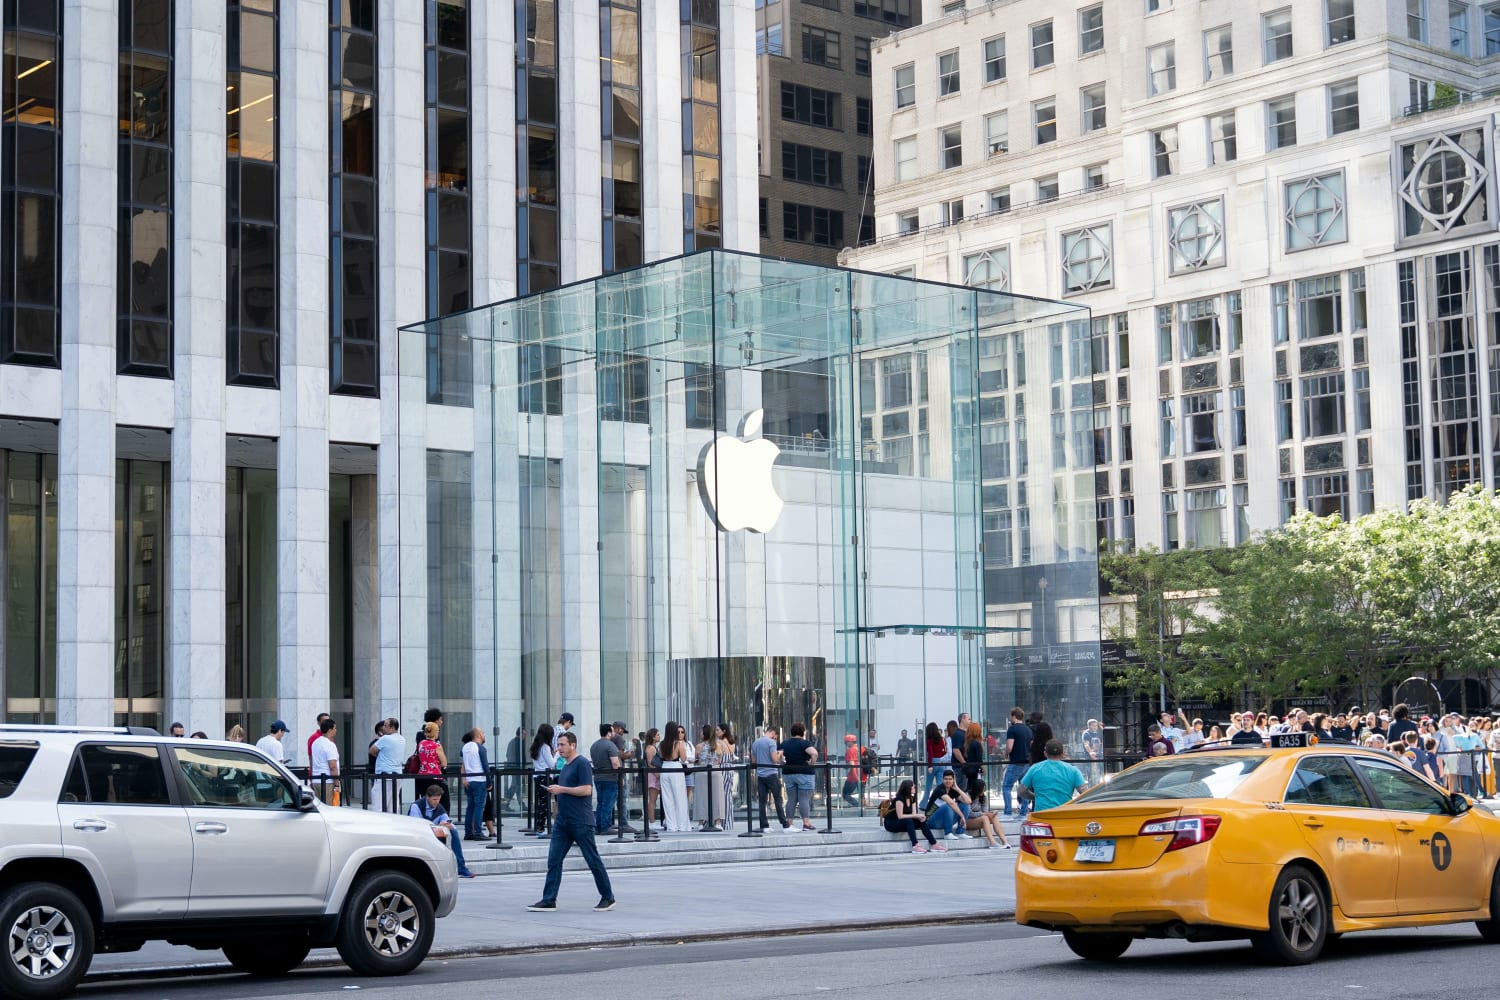 iphone-12-first-day-pre-orders-top-iphone-11-numbers-20201019-1